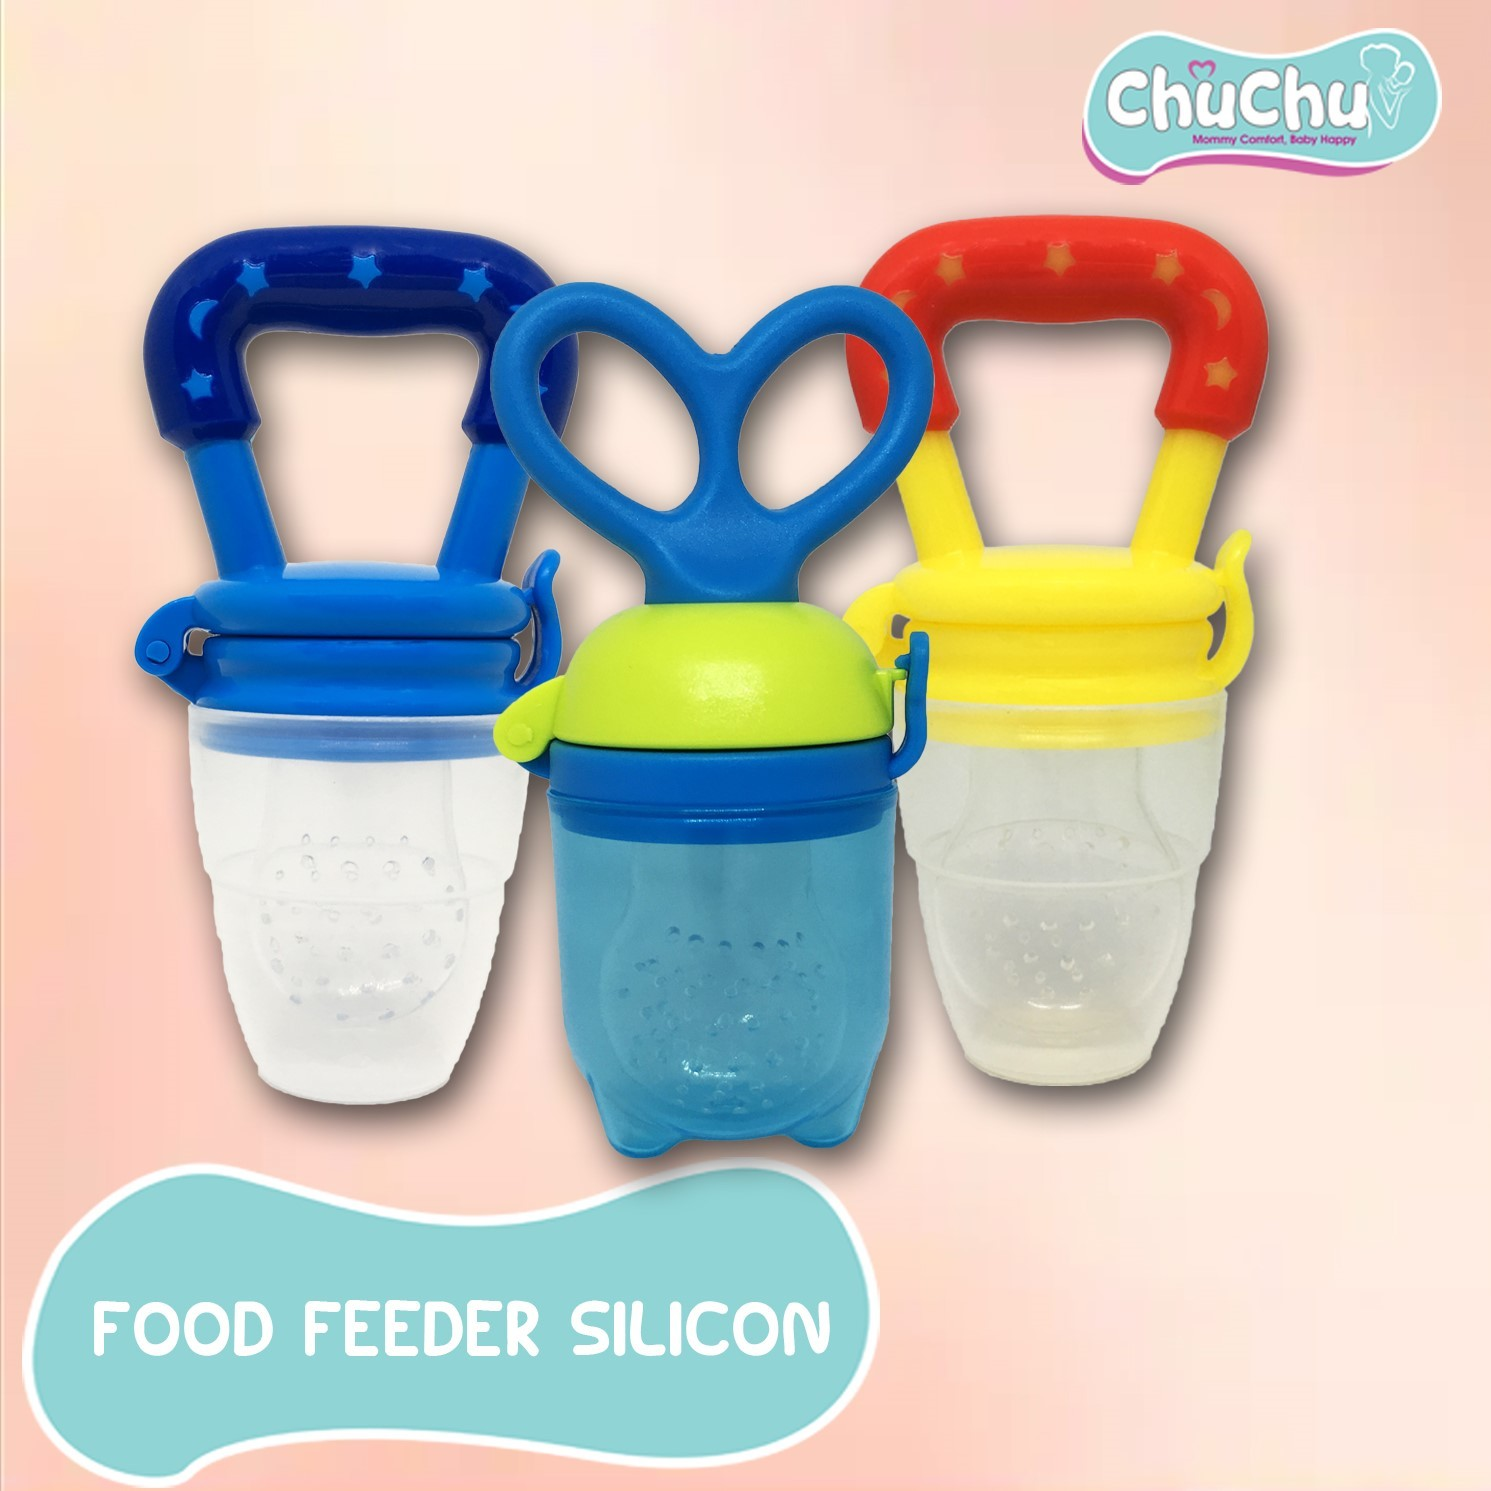 Food Feeder Silicon.jpg